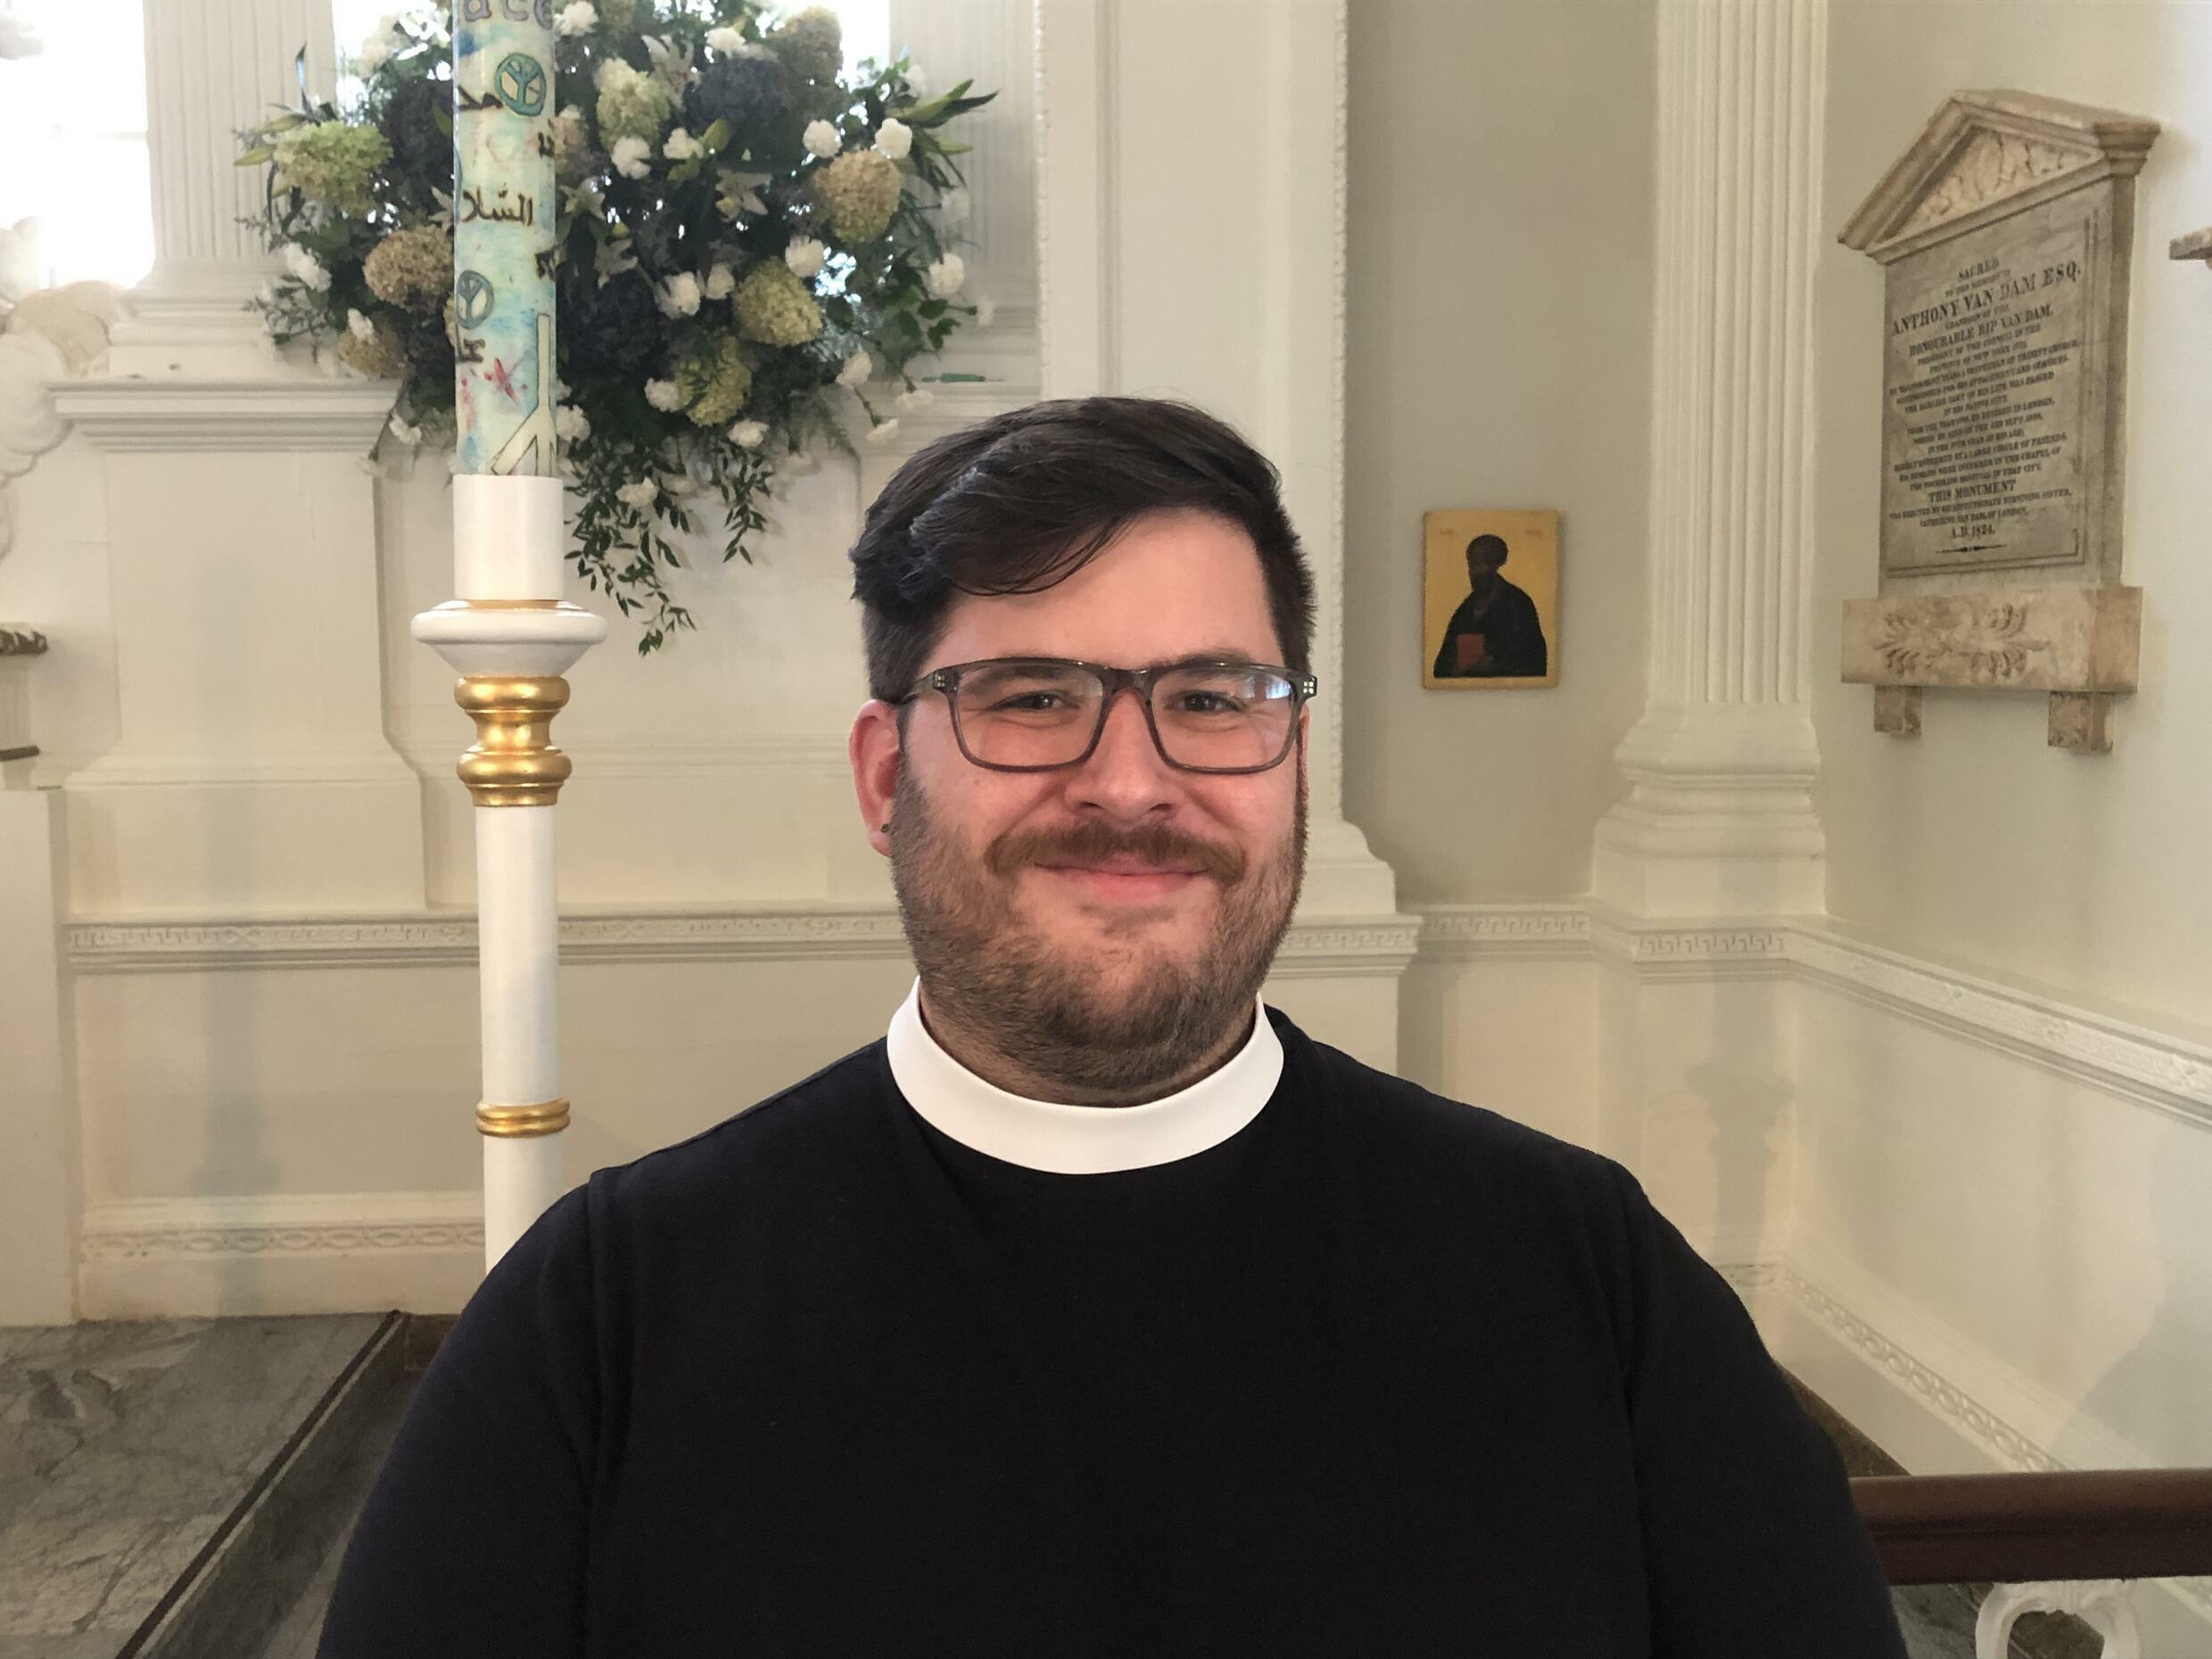 Reverend Matt Welsch, 33, is one of the newest priests at Trinity Church/St. Paul's Chapel.